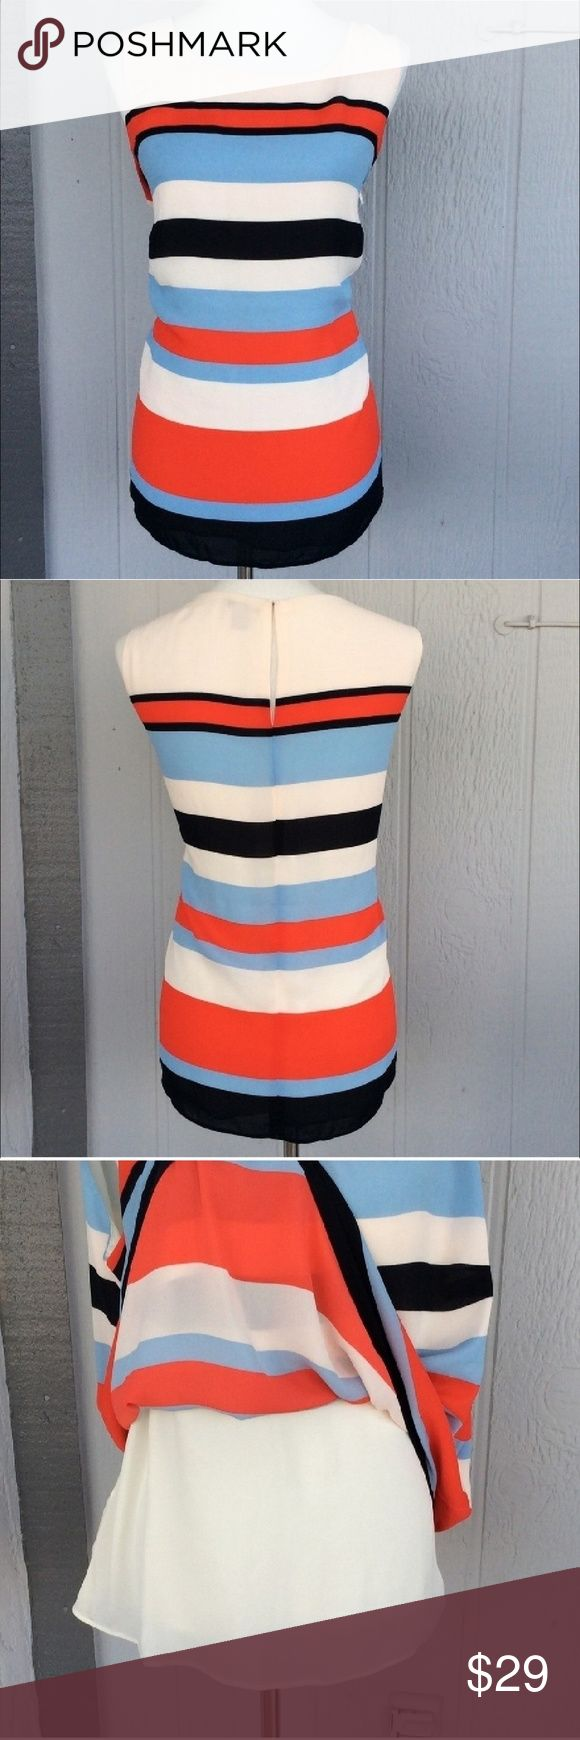 "Cream Blue Black Sleeveless Striped Keyhole Top White Orange Blue Striped Sleeveless Blouse Plus size striped tank top. Keyhole back. Flowy fabric. Fully lined. Light pink, cream, orange, light blue, navy color stripes. Round neck. Chiffon fabric. Sleeveless striped blouse. Perfect to wear as a casual top or a dressy top. Approximate measurements armpit to armpit 22"". Length 26"". Paraphrase Tops Blouses"